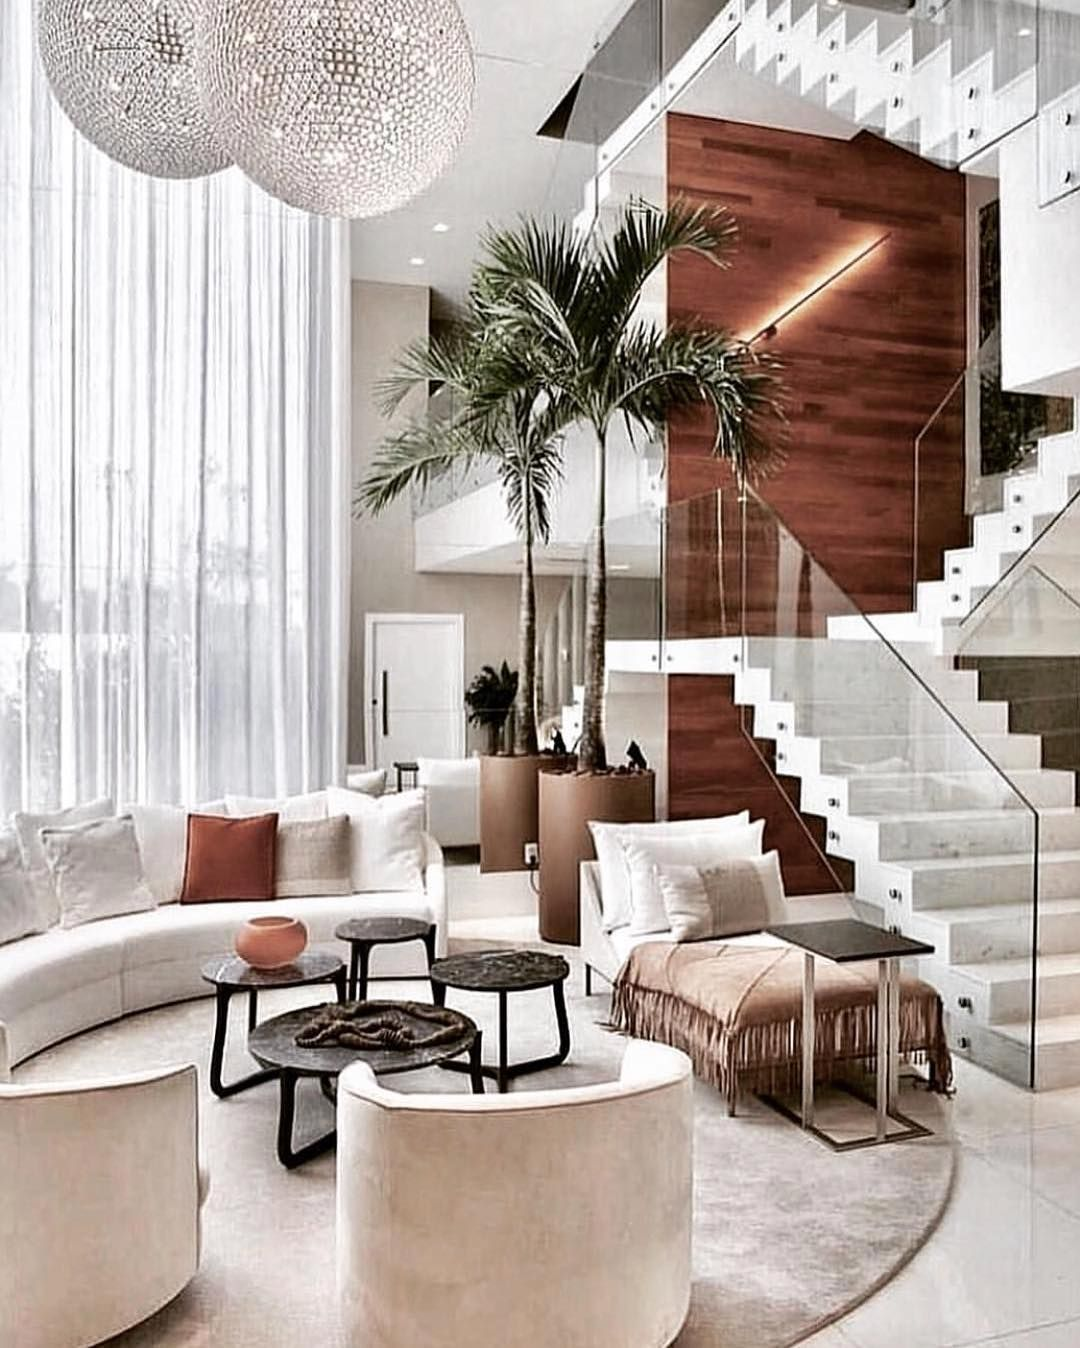 Best 27 Beegcom Crochet Home Decor Pinterest Best Modern House Design House Interior Best Interior Design